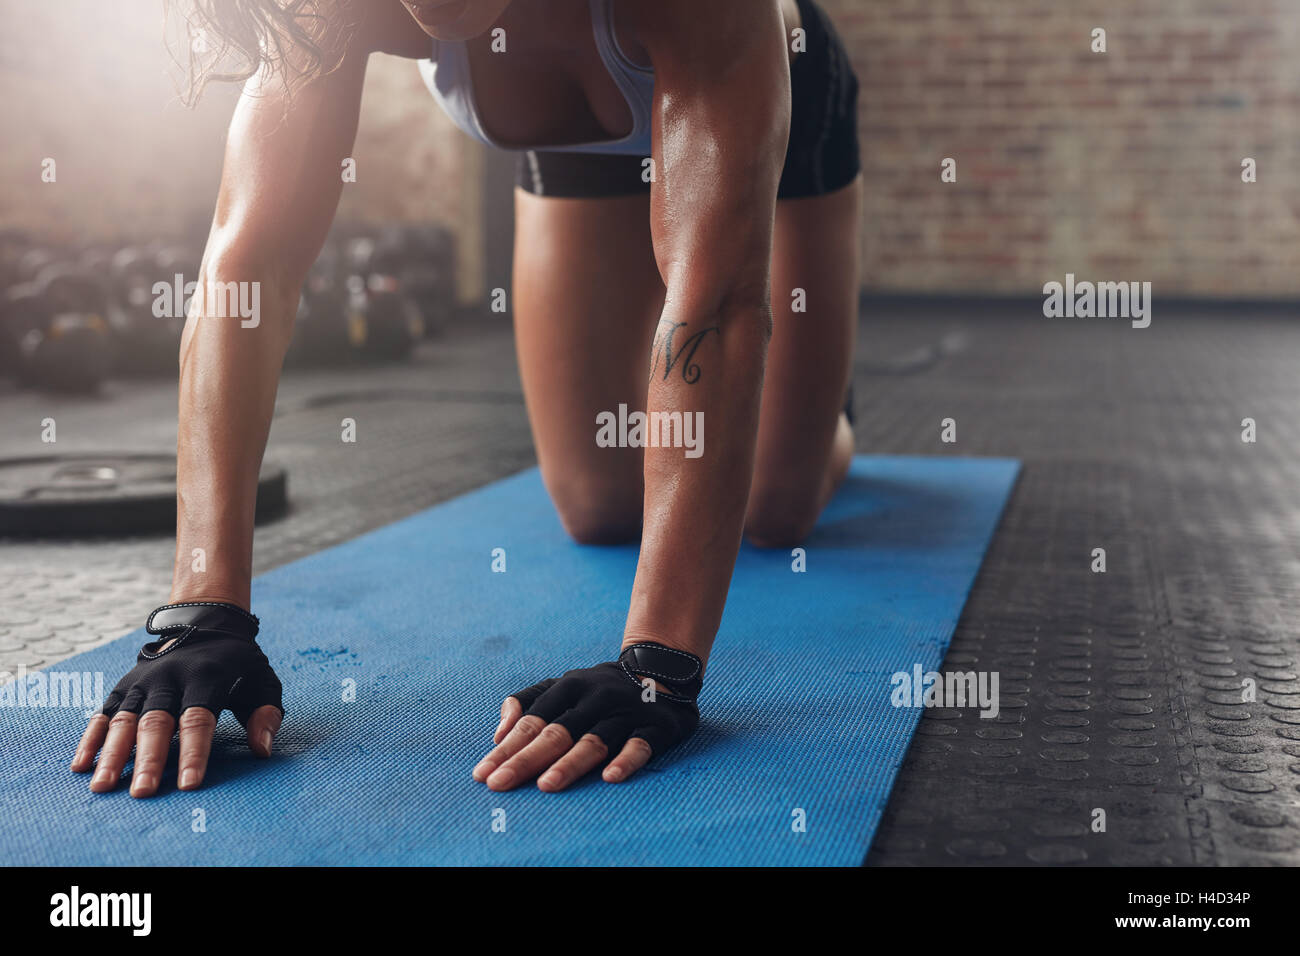 Female on exercise mat doing stretching workout. Focus on hand of a woman on fitness mat. - Stock Image